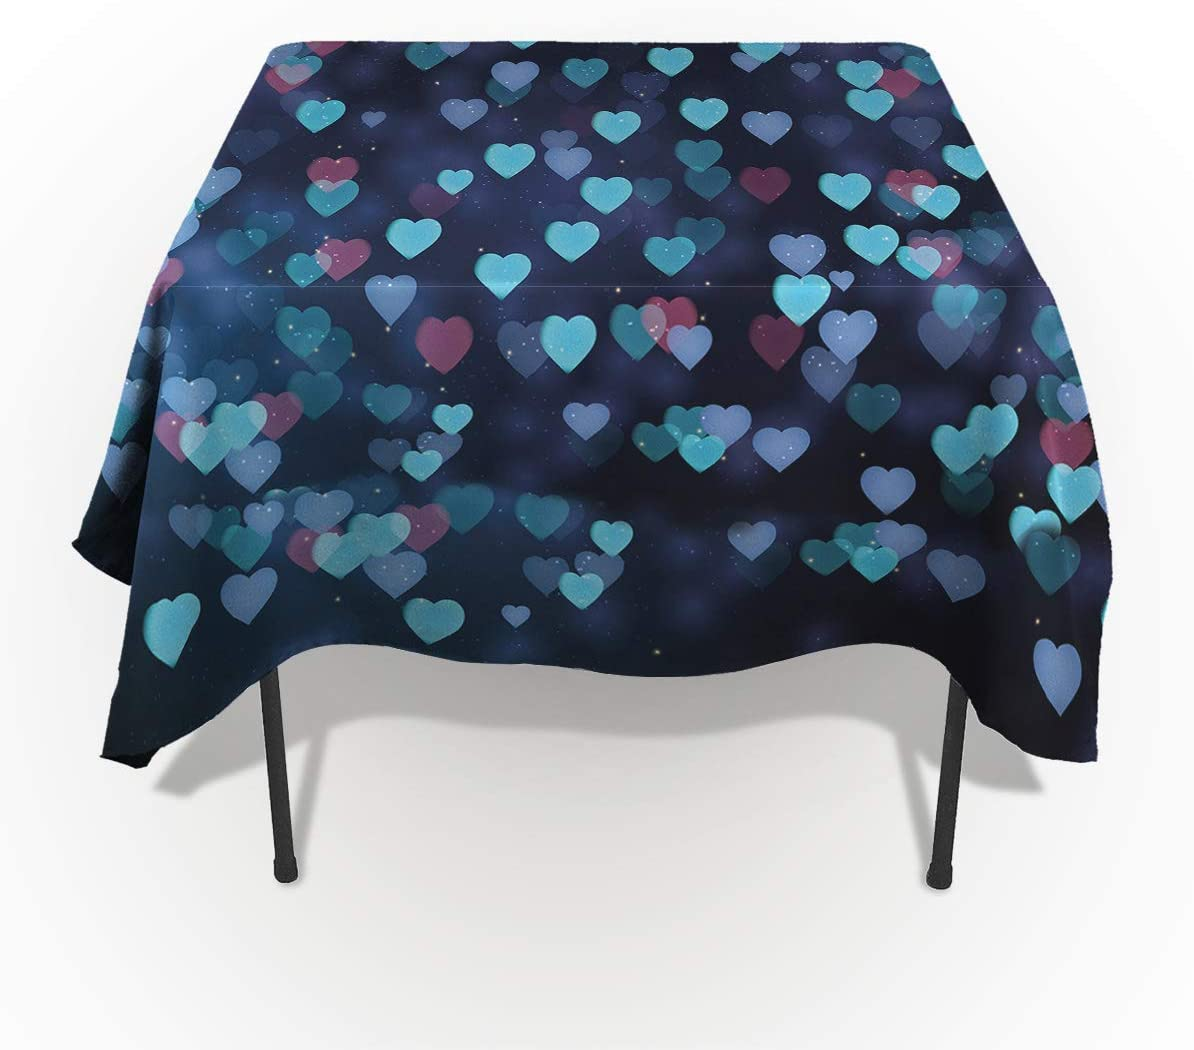 Fantasy Star Latest item Rectangle Year-end annual account Polyester Heart Romantic Tablecloth Blue